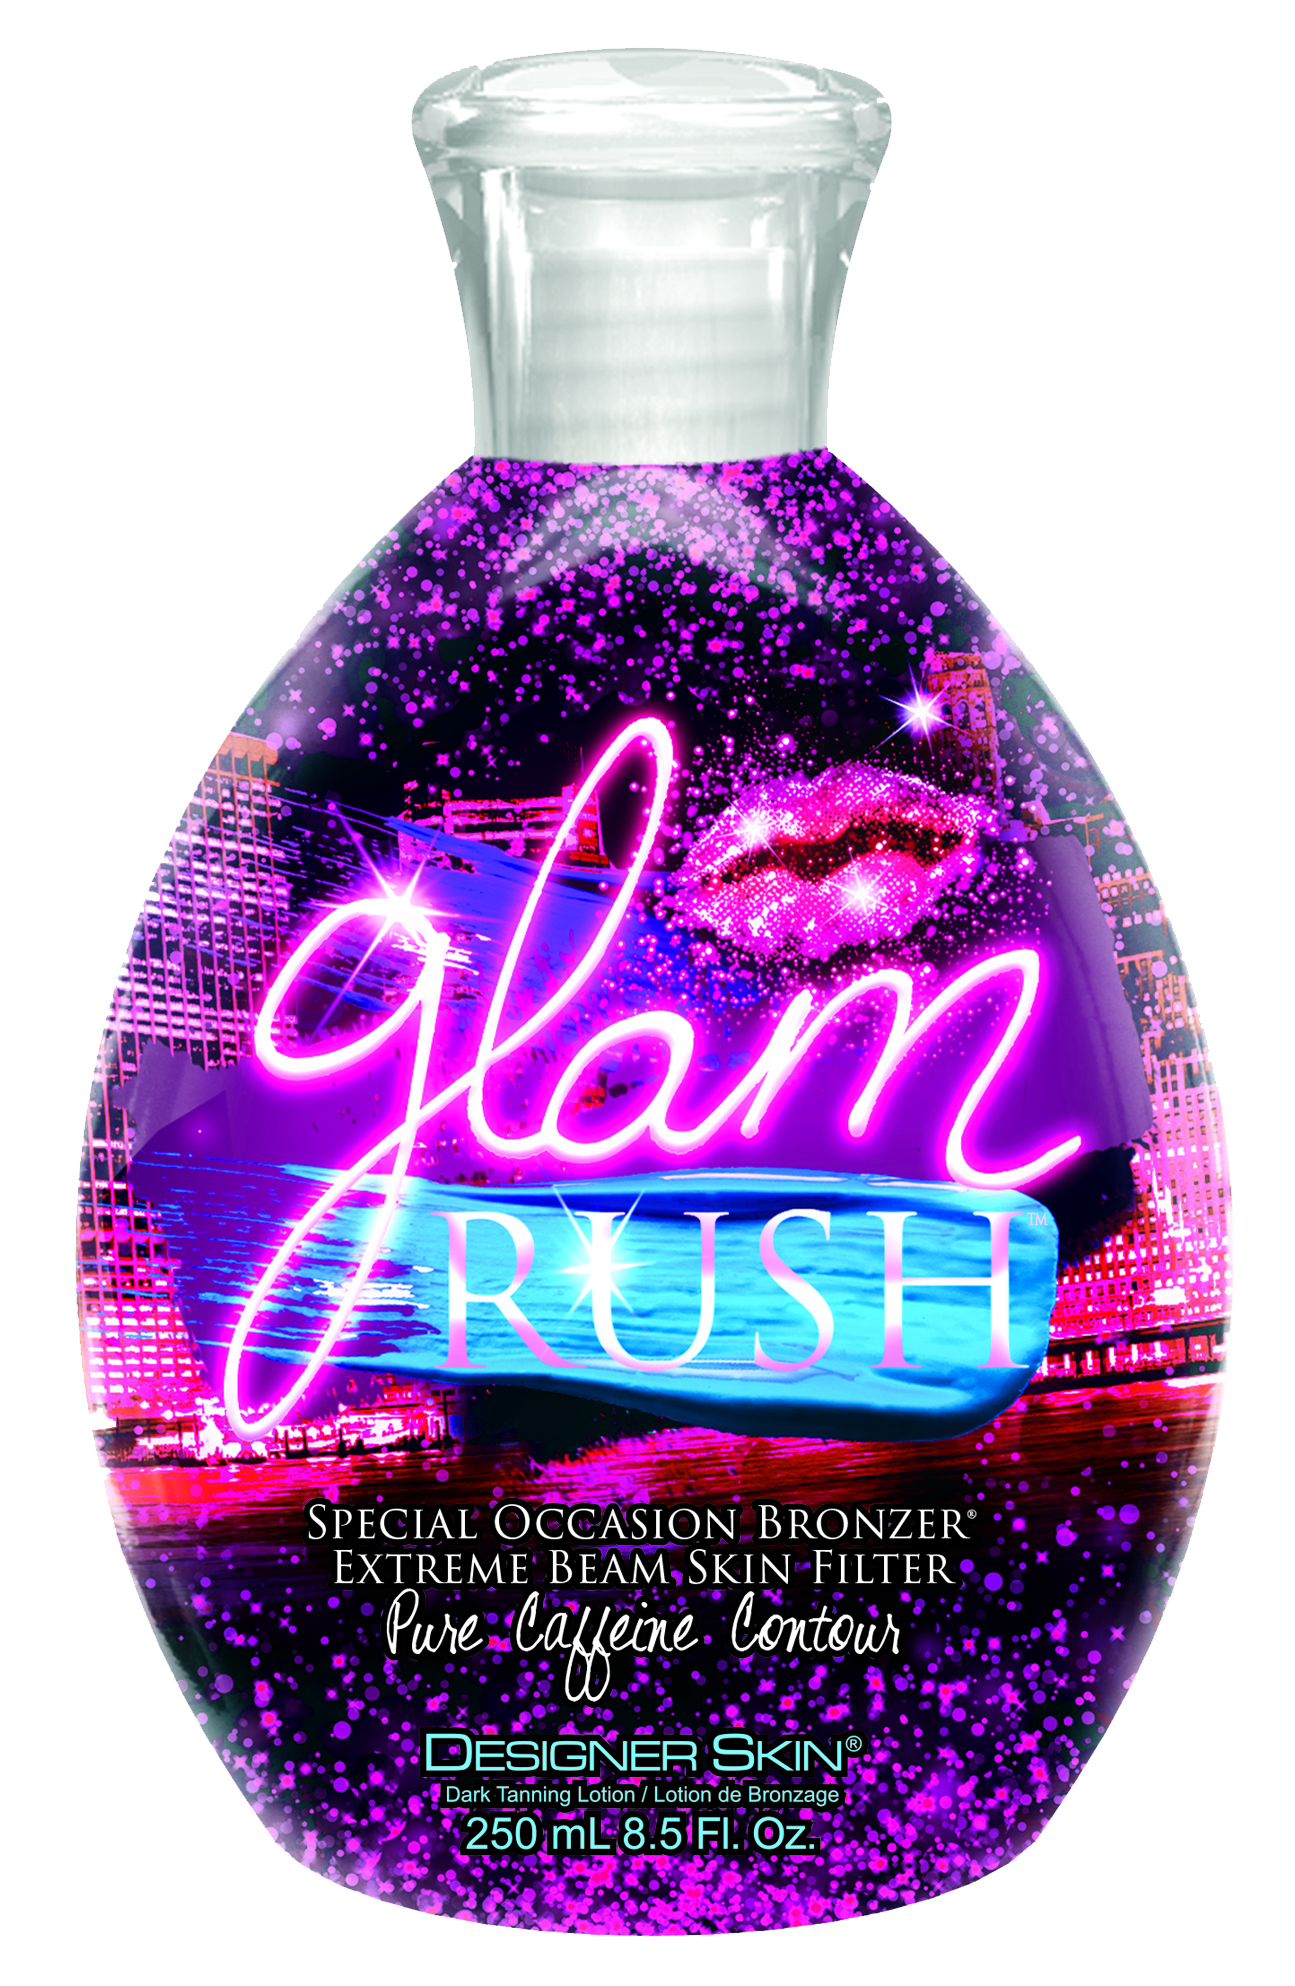 Glam Rush™ Special Occasion Bronzer®